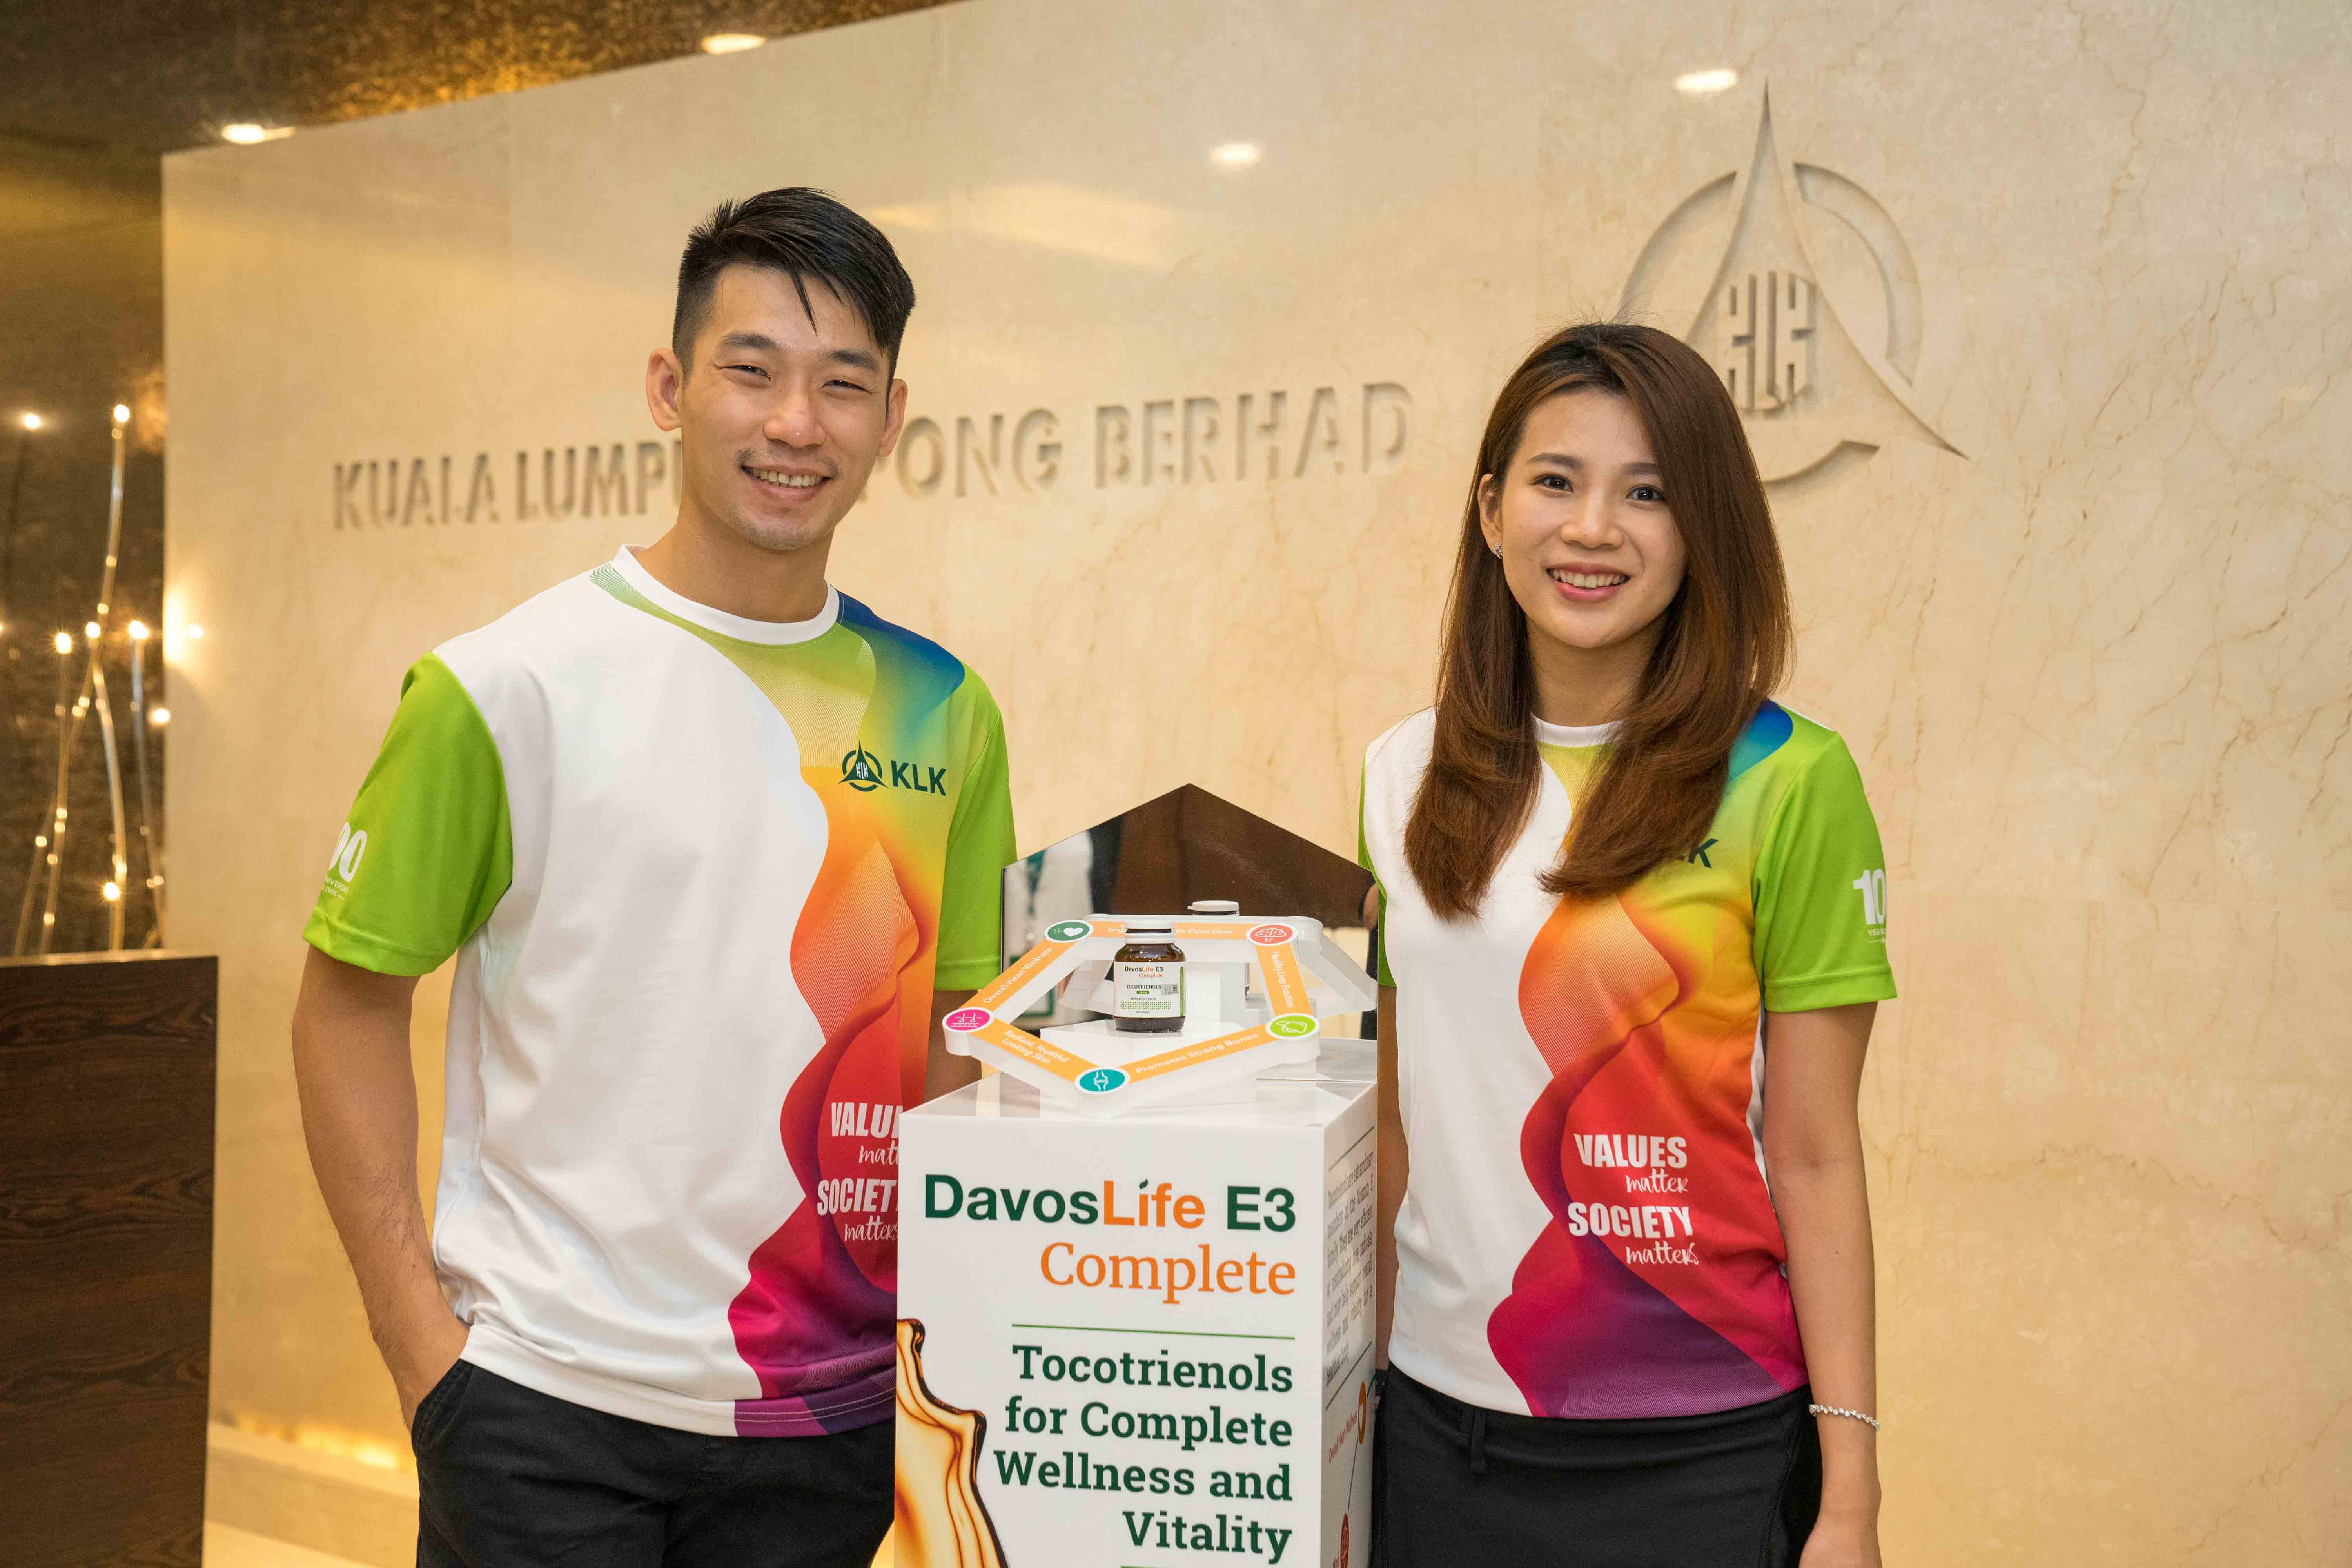 Peng Soon and Liu Ying are the first Brand ambassadors for KLK's DavosLife E3 Complete